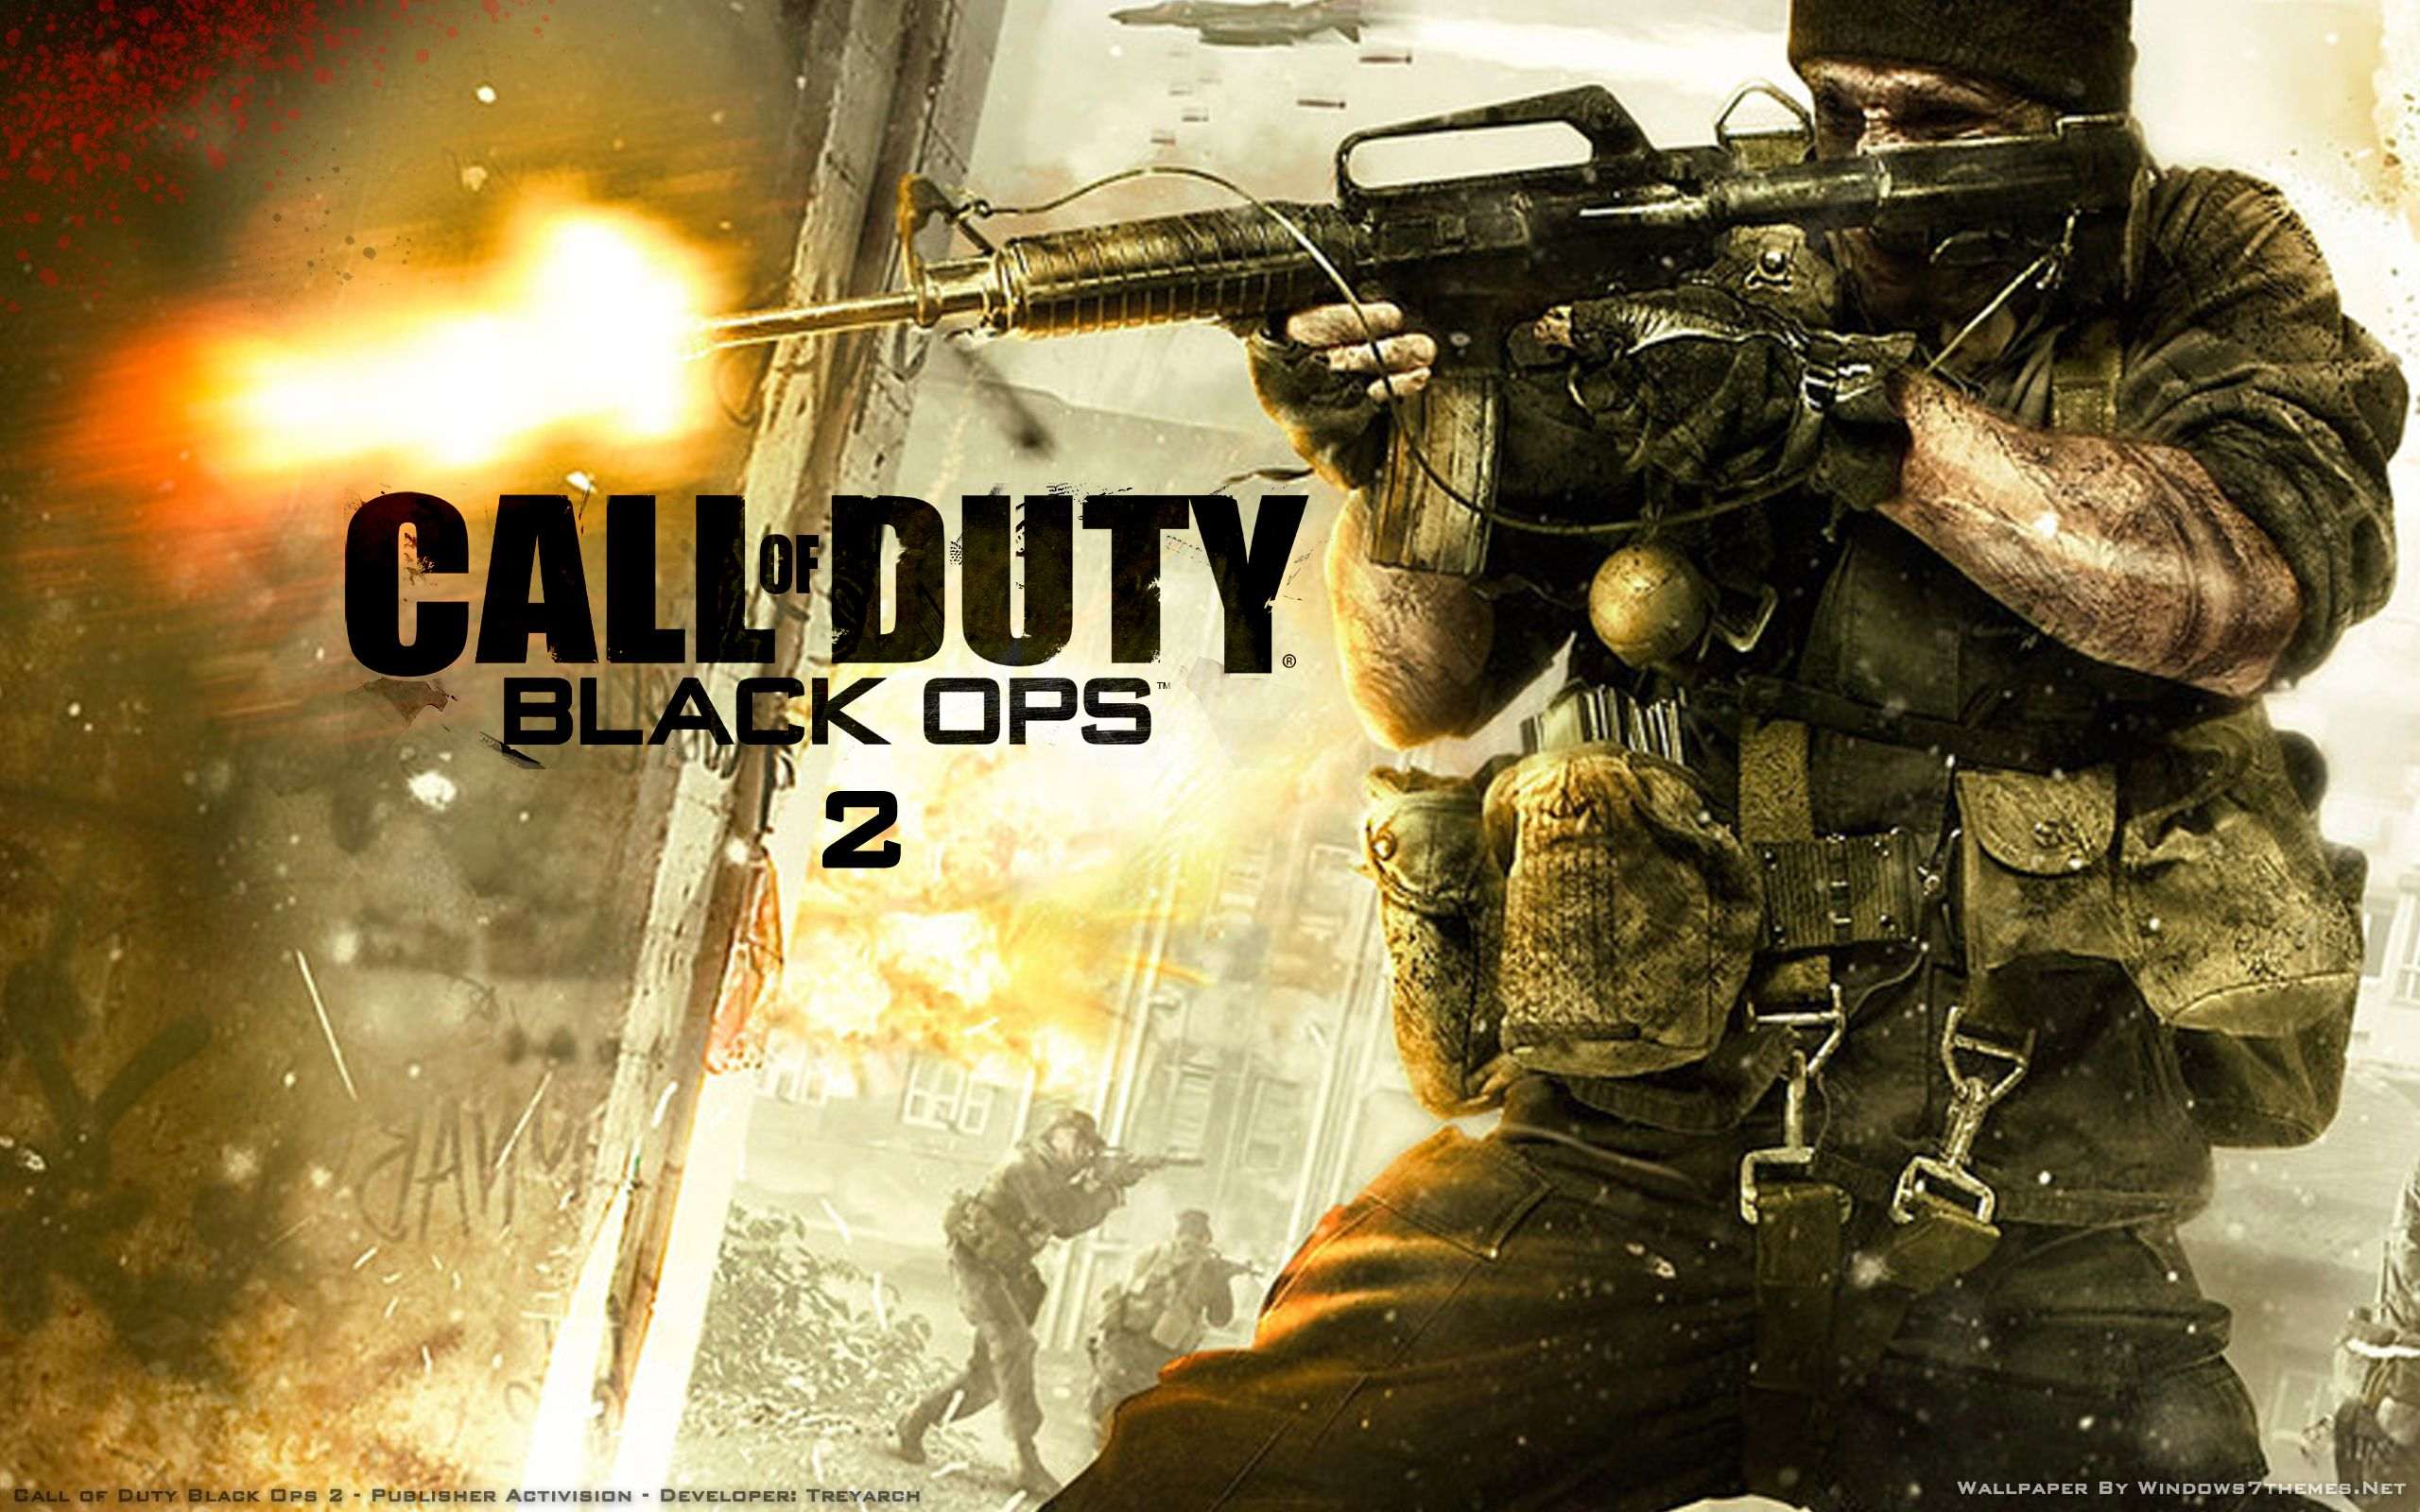 Call Of Duty Black Ops 2 Wallpaper 1 With Images Call Of Duty